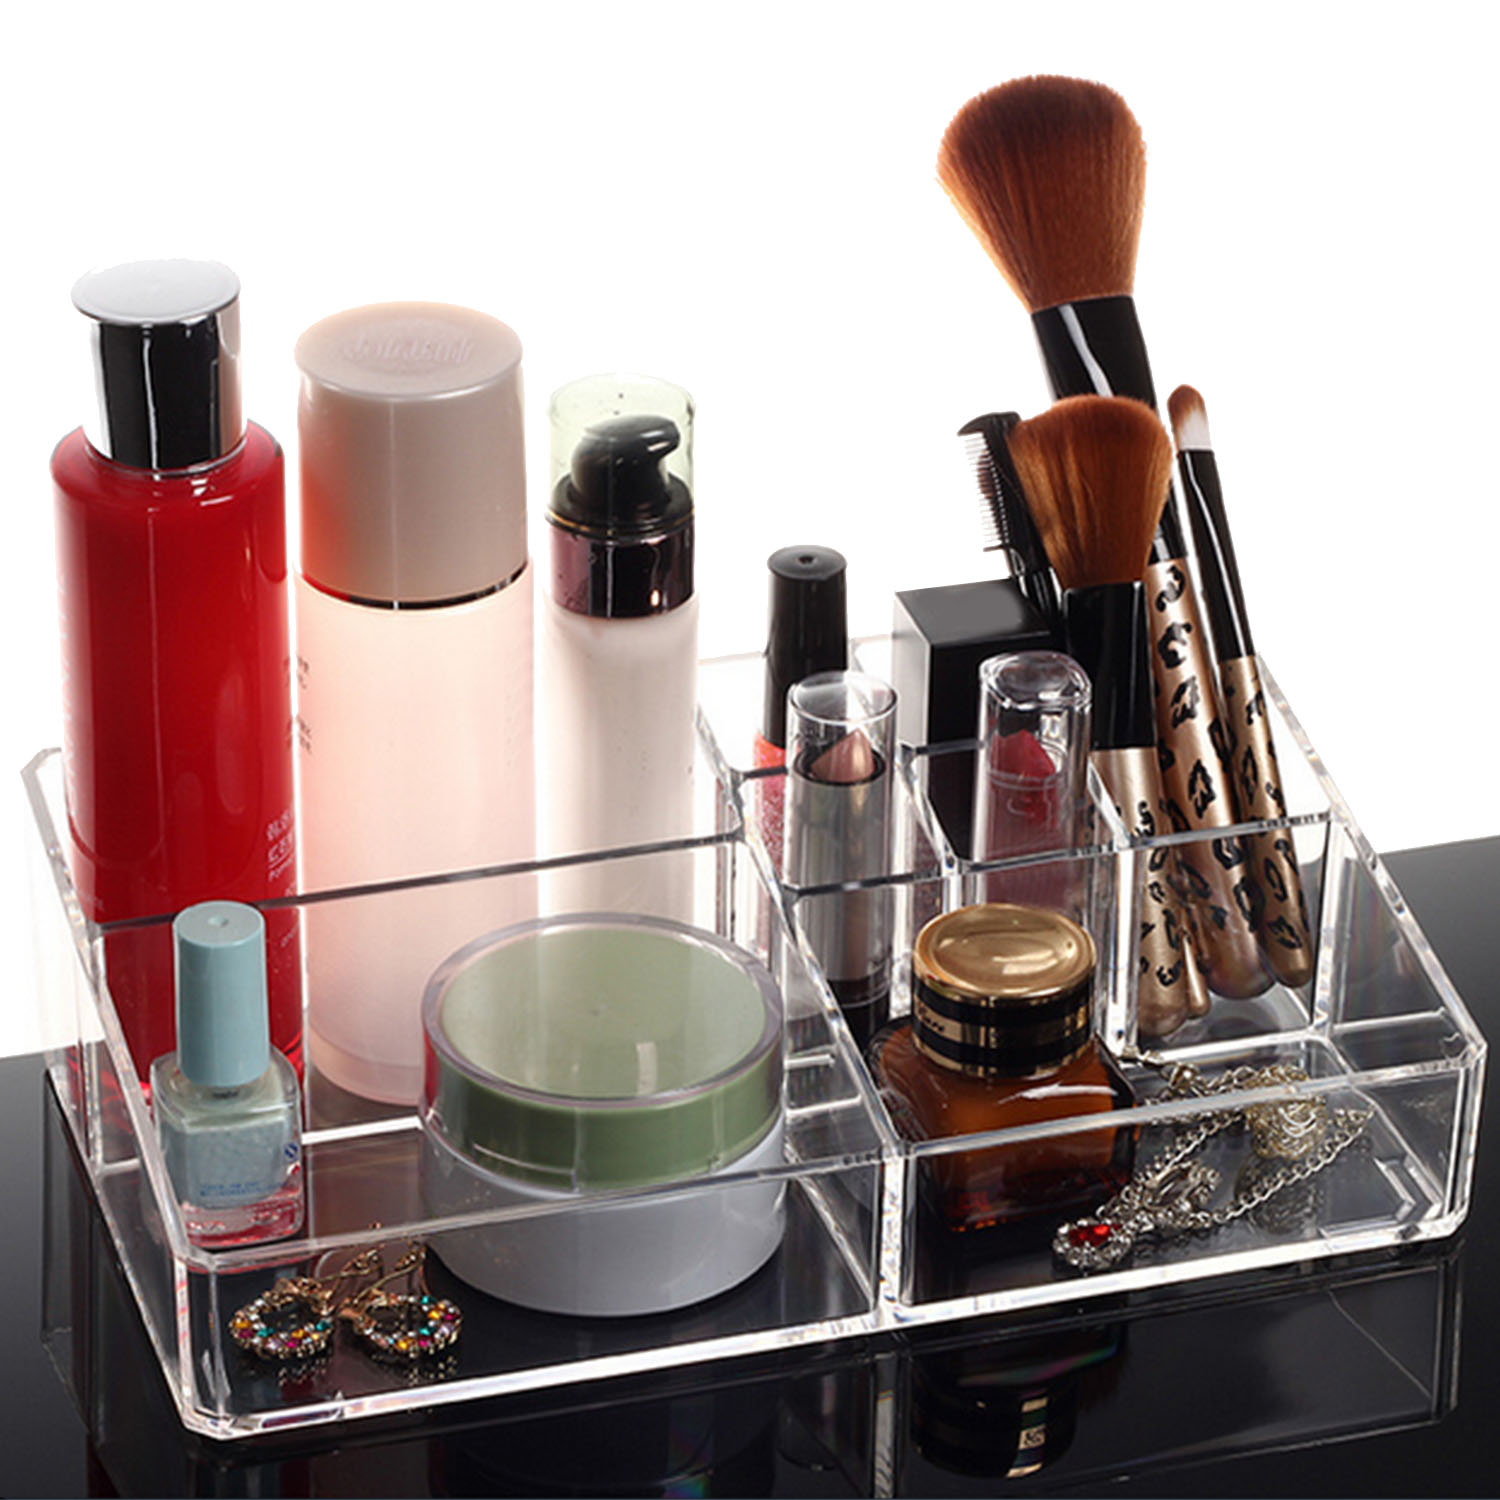 Behogar Clear Cosmetic Makeup Storage Display Organizer Box Lipstick Holder Stand Make up Brush Kit Nail Polish Case Container